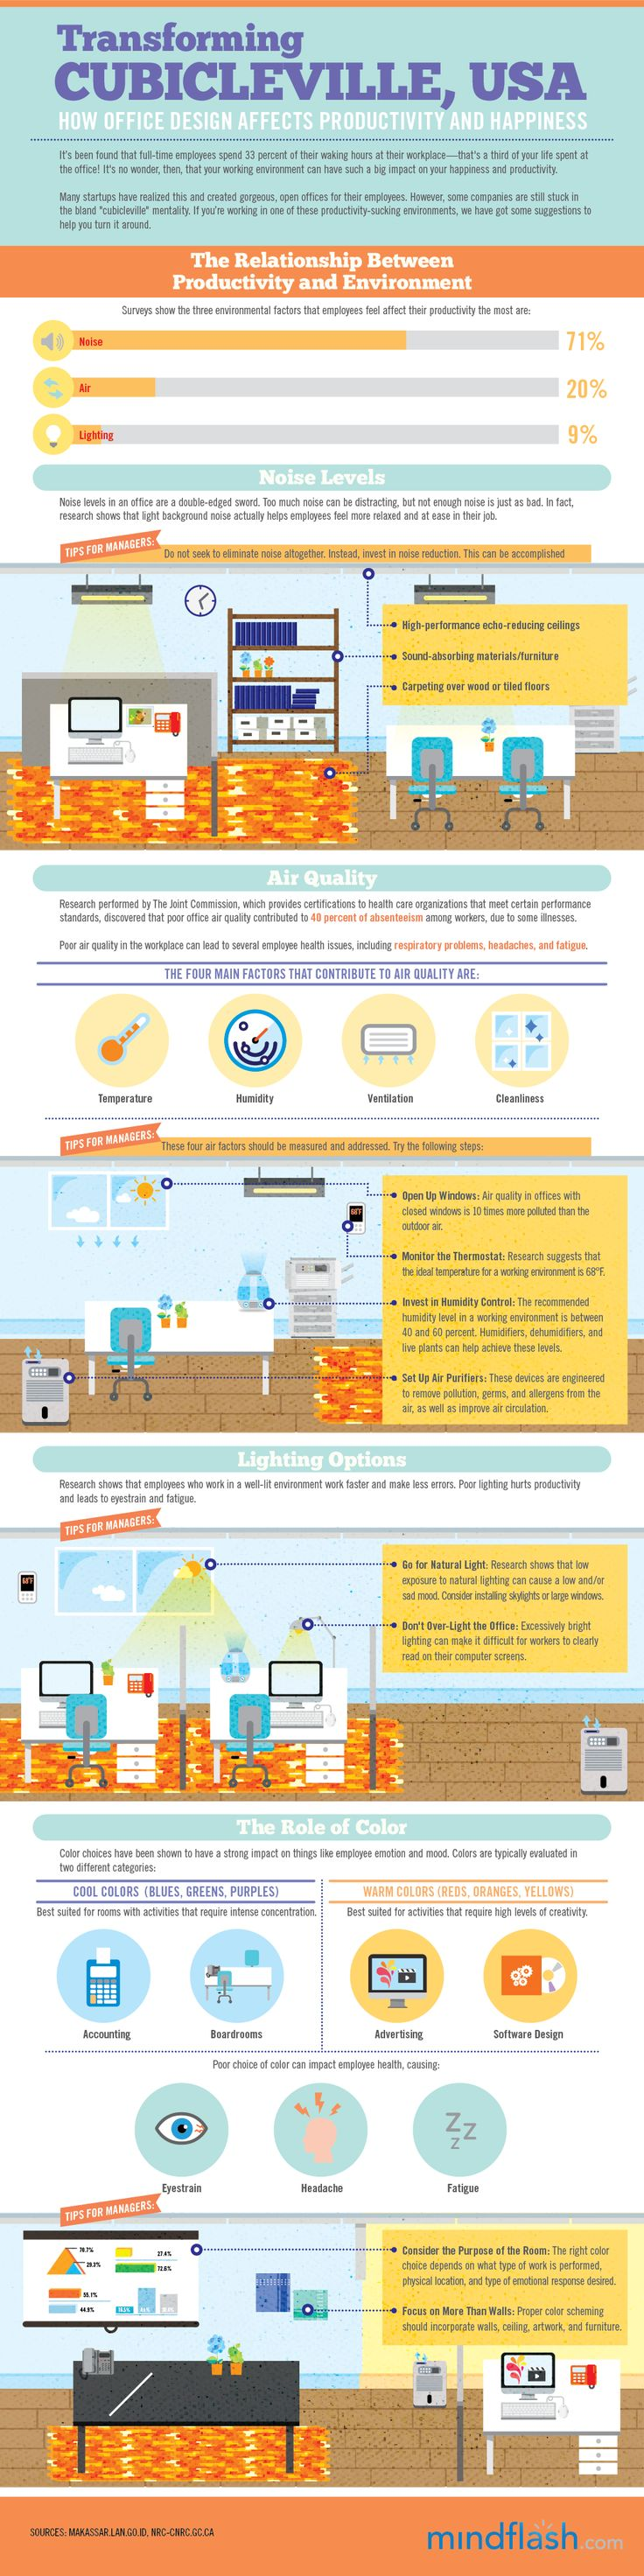 Transforming Cubicleville, USA: How Office Design Effects Productivity and HappinessOffices Desks, Office Designs, Offices Design, Offices Spaces, Work Spaces, Happy Infographic, Offices Ideas, La Productividad, Design Influence